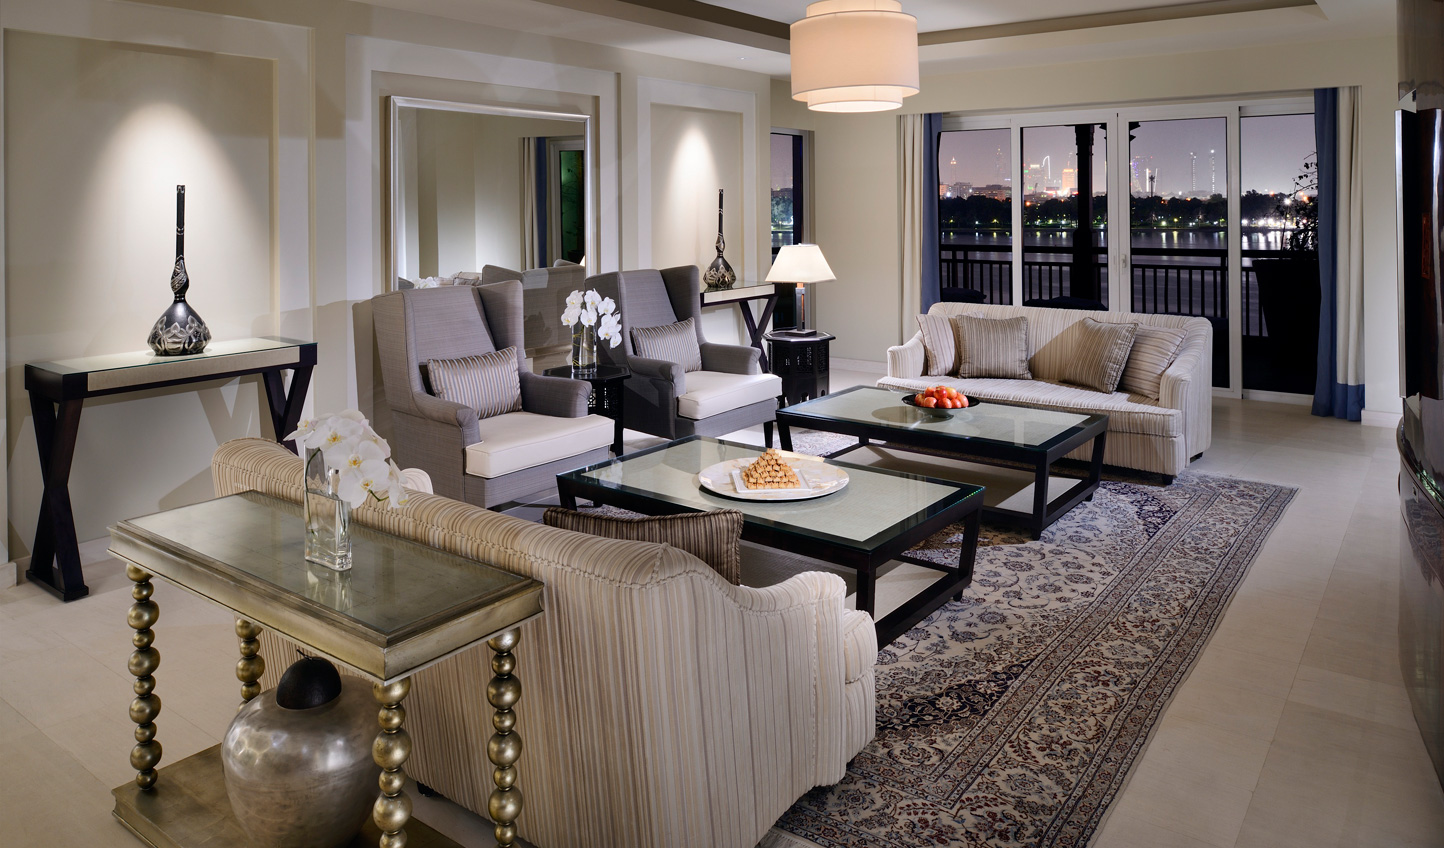 Get a taste for Dubai's high life with a stay in the Royal Suite